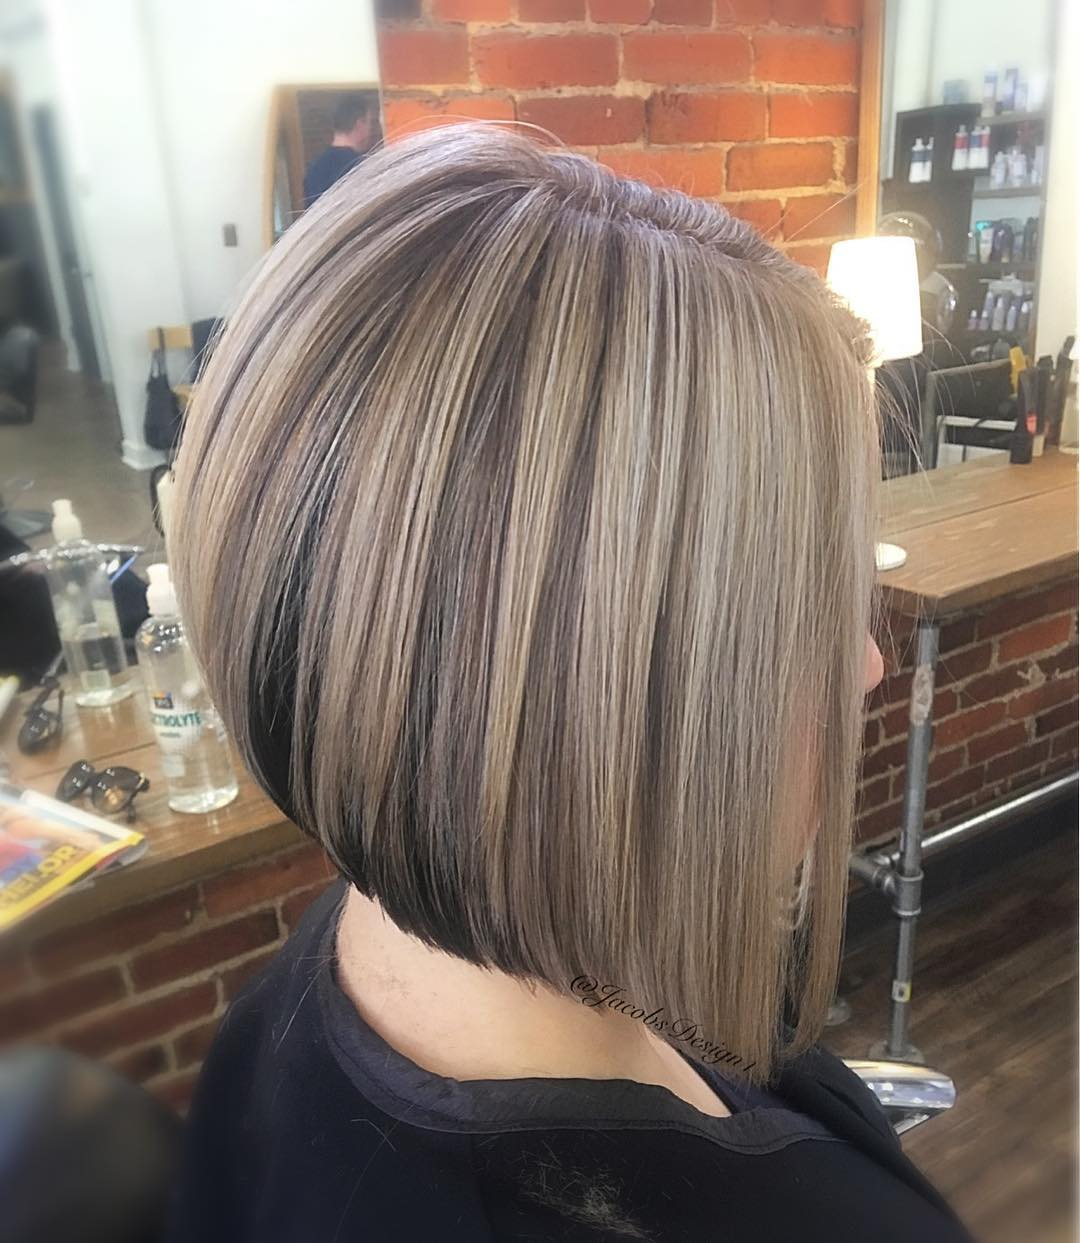 Inverted Bob Haircuts And Hairstyles 2018 Long Short Medium